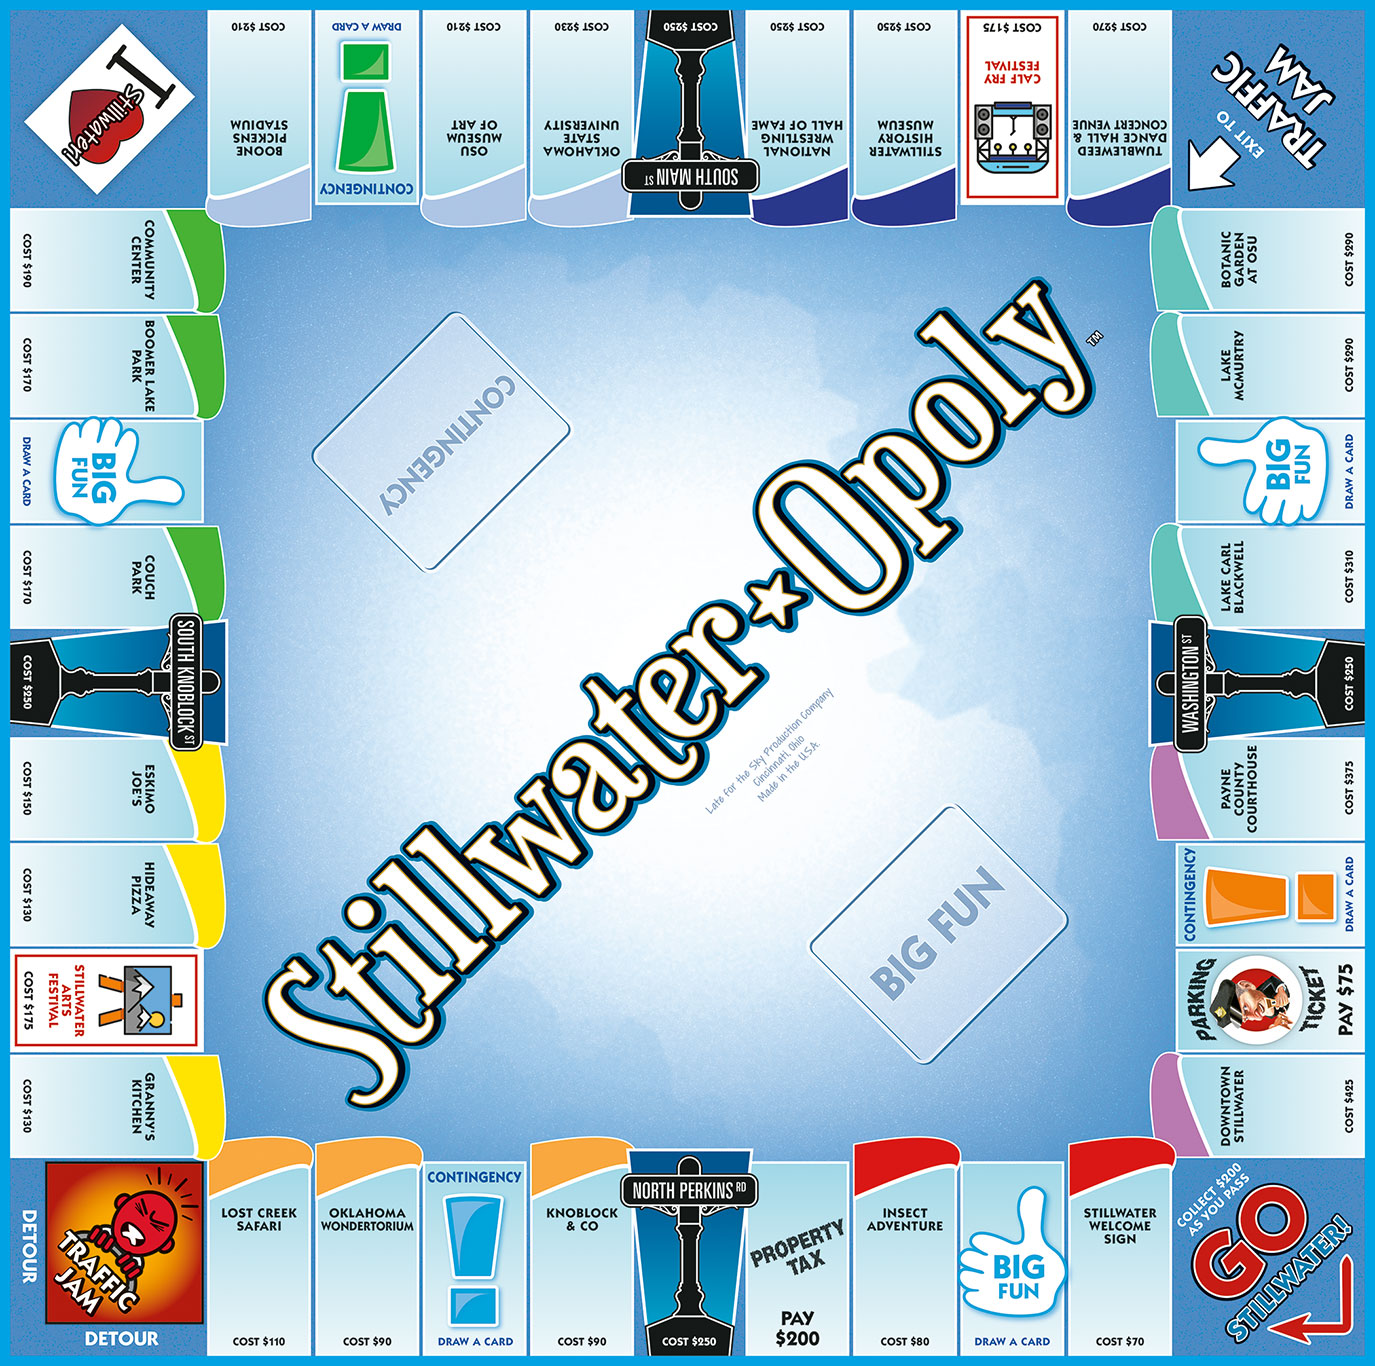 STILLWATER-OPOLY Board Game